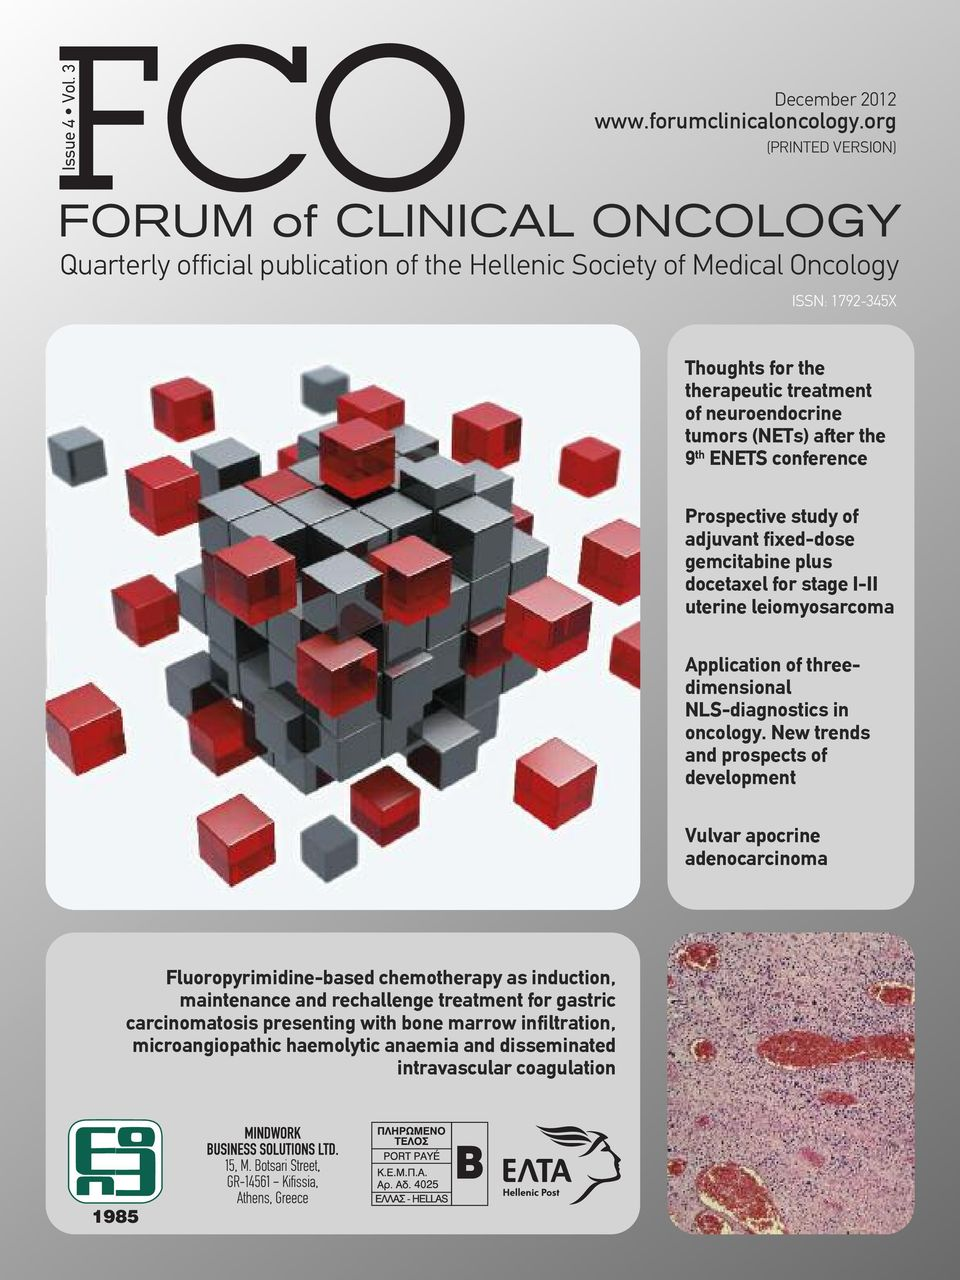 neuroendocrine tumors (NETs) after the 9 th ENETS conference Prospective study of adjuvant fixed-dose gemcitabine plus docetaxel for stage I-II uterine leiomyosarcoma Application of